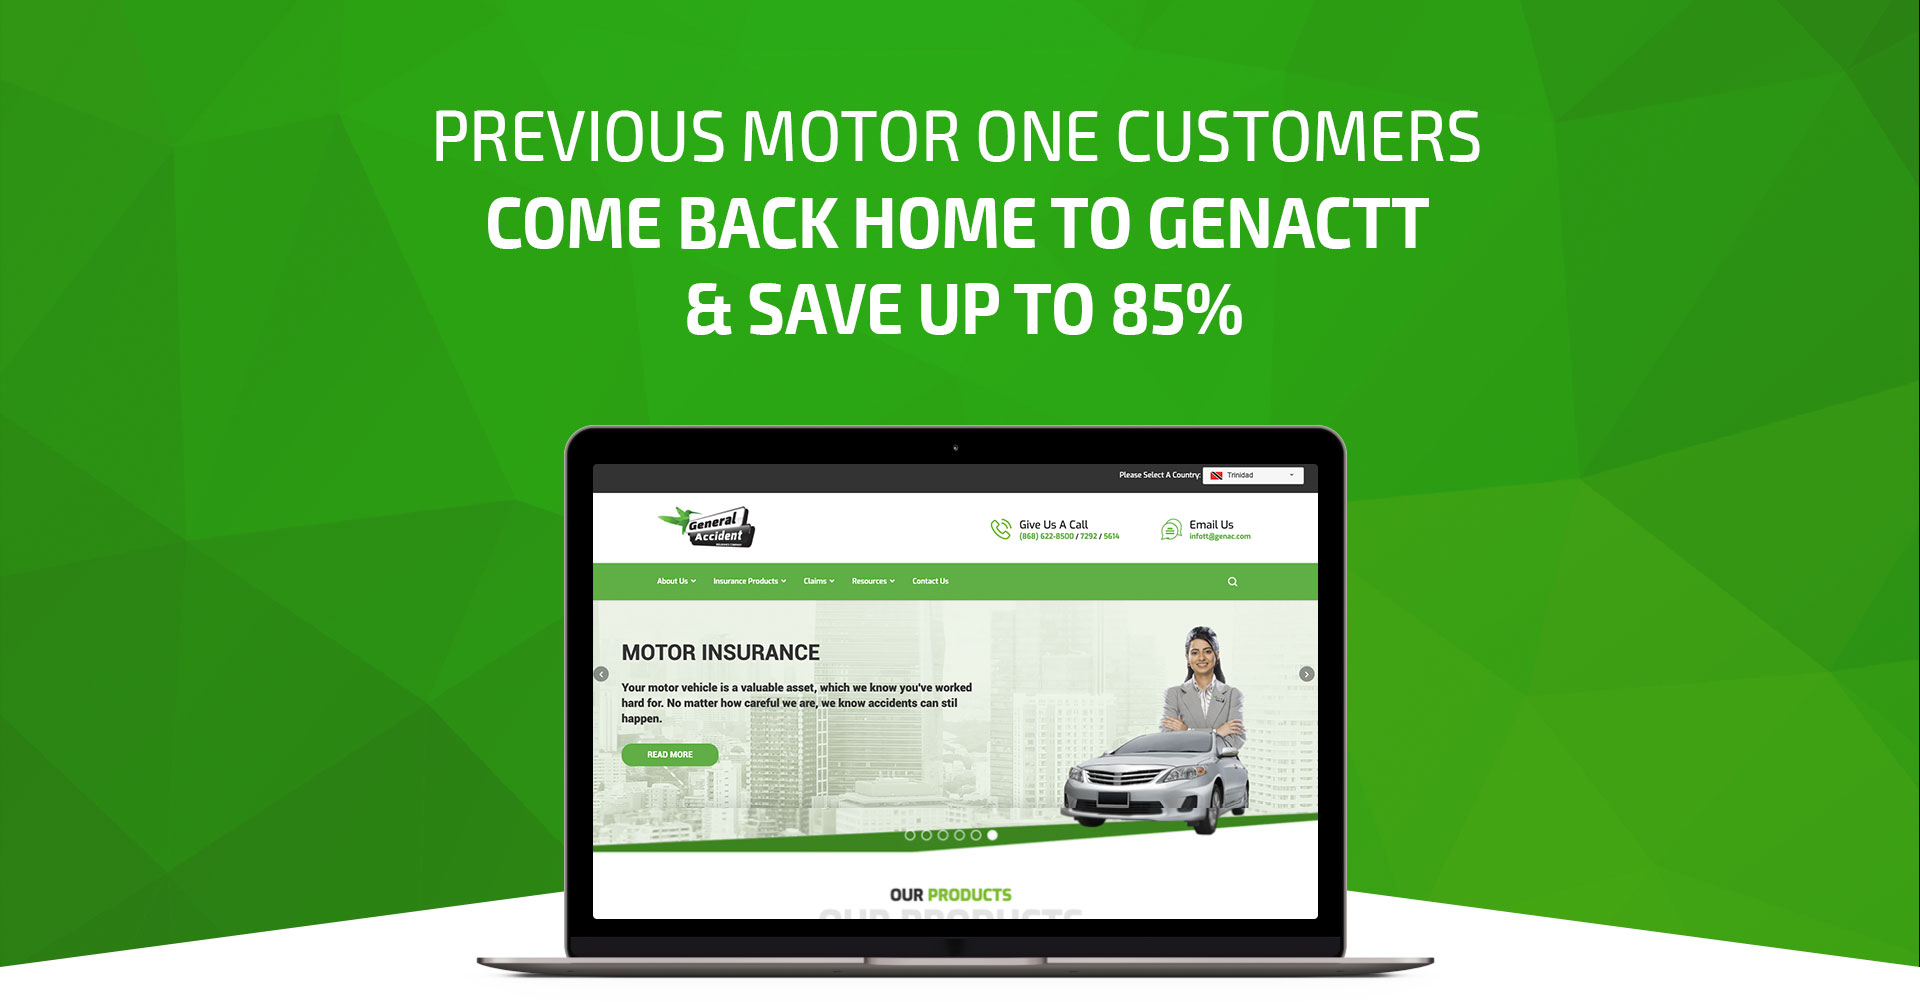 Previous motor one customers come back home to GenacTT